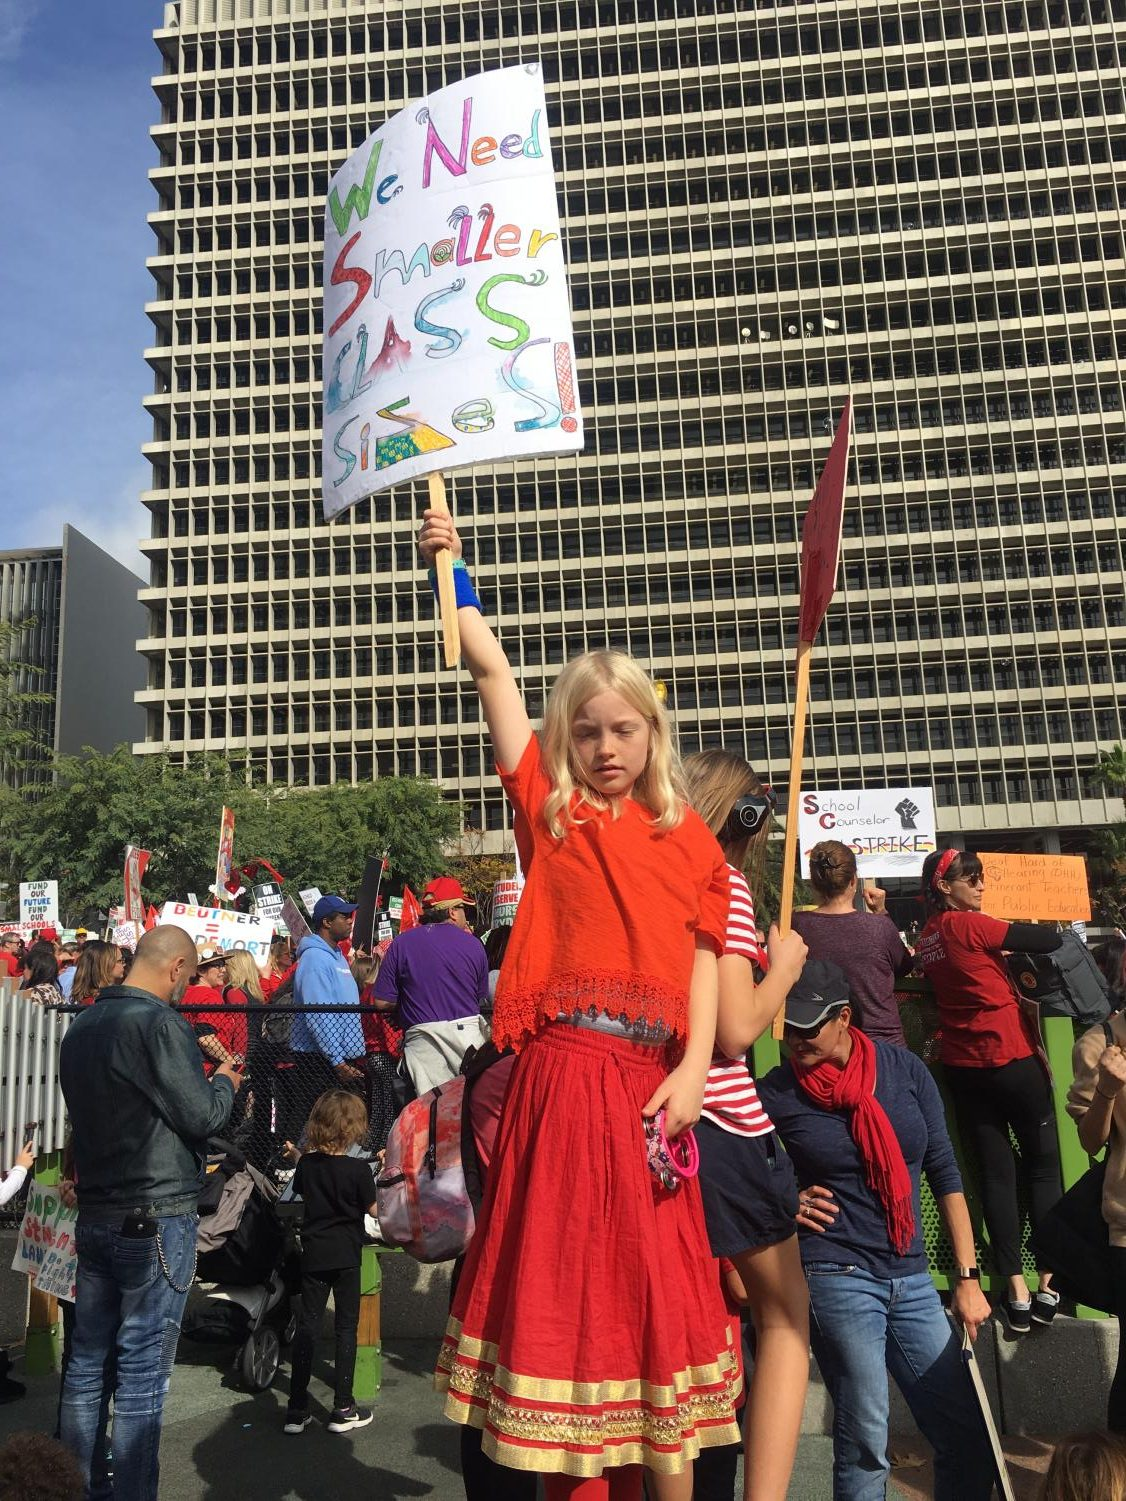 A+child+stands+tall+amidst+a+crowd+of+protesters%2C+striking+for+her%2C+and+so+many+other+children%27s+rights.+At+Bell%2C+teachers+have+had+up+to+50+kids+in+a+classroom.+%22In+the+past+I%E2%80%99ve+had+as+many+as+52+students+in+a+class...if+the+cap+is+39%2C+then+there+are+going+to+be+teachers+that+are+not+going+to+have+47%2C+not+going+to+have+50+kids+in+a+room%3B+everyone+will+have+a+chair+which+is+kind+of+important%2C%22+says+Mr.+Moreno%2C+AP+Physics+and+Environmental+Science+teacher.